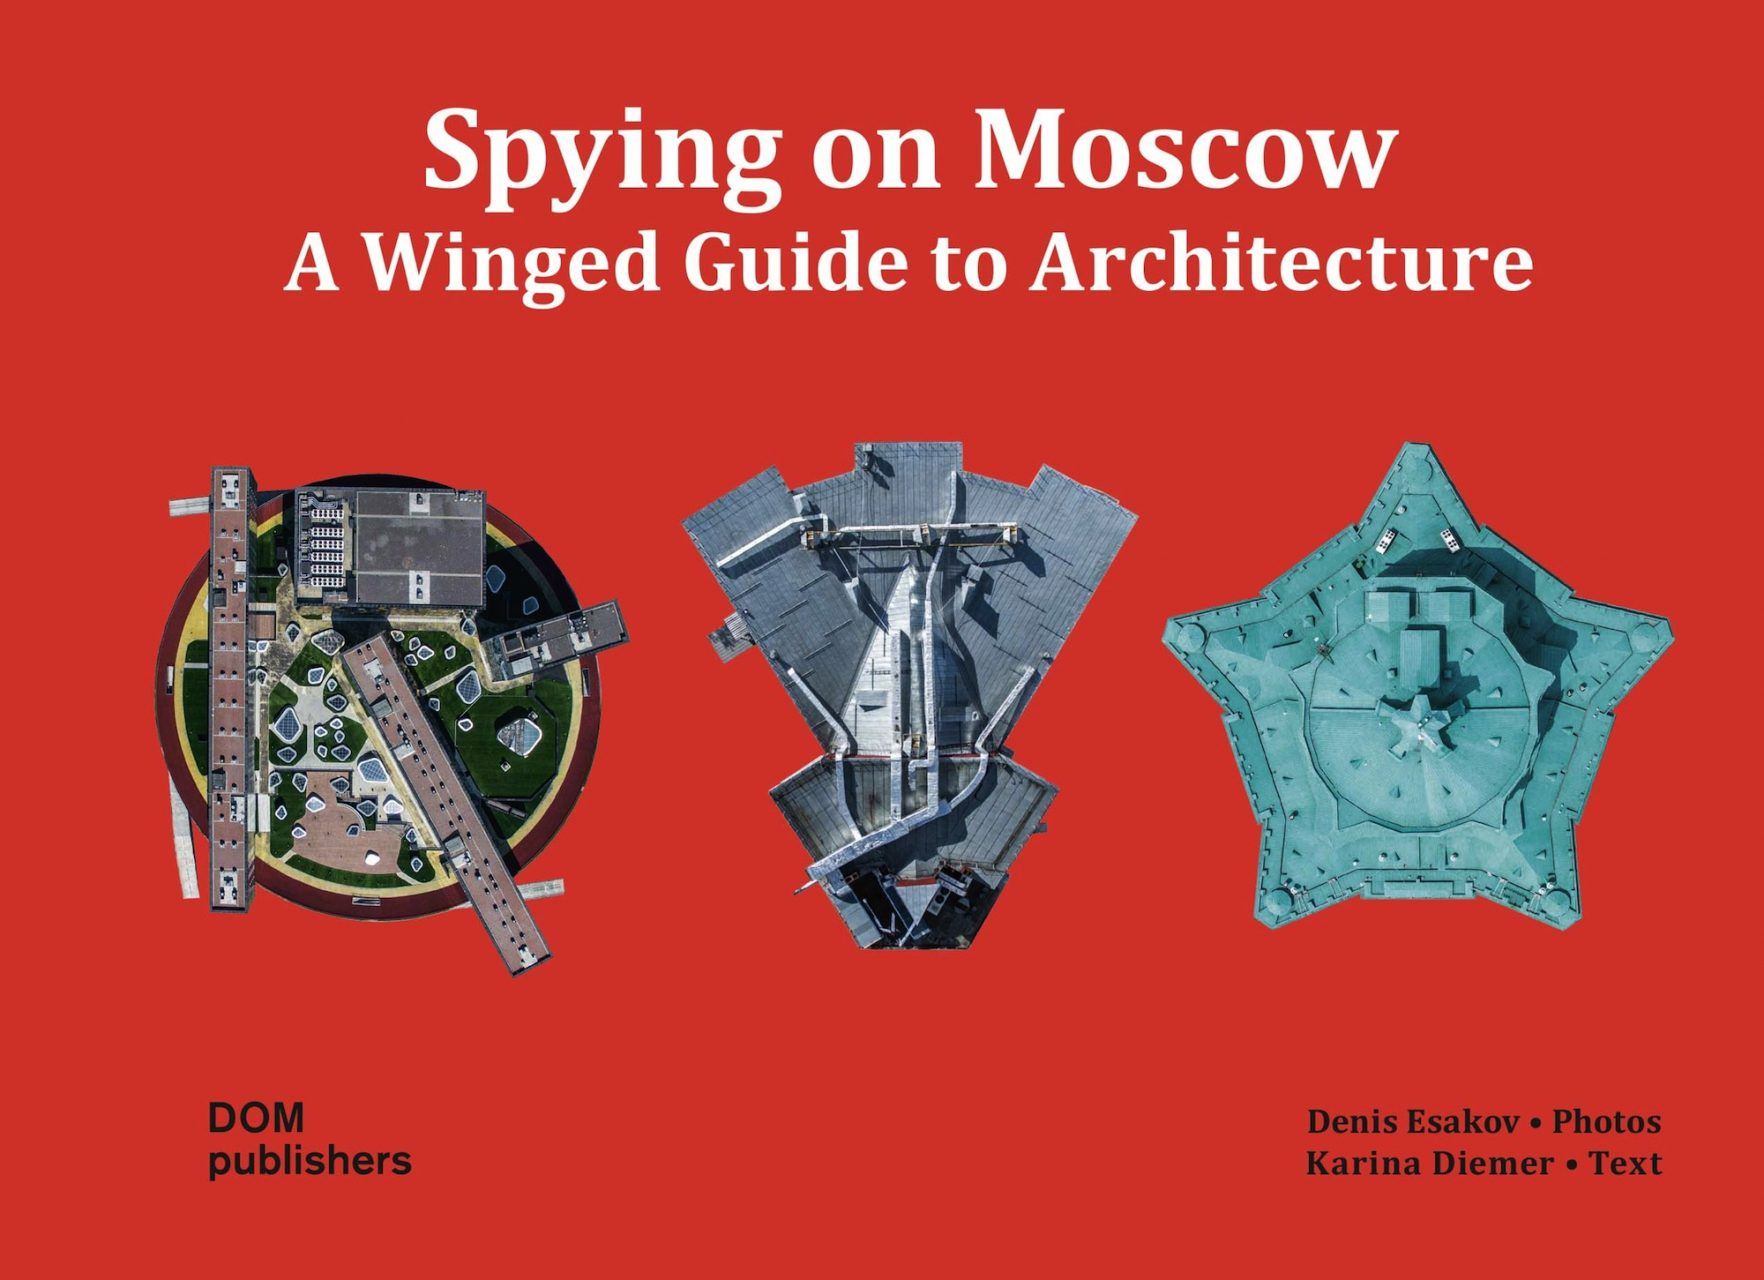 Spying on Moskow. A winged guide to architecture – von Denis Esakov (Fotos), Karina Diemer (Text). Erschienen bei DOM publishers, Berlin.